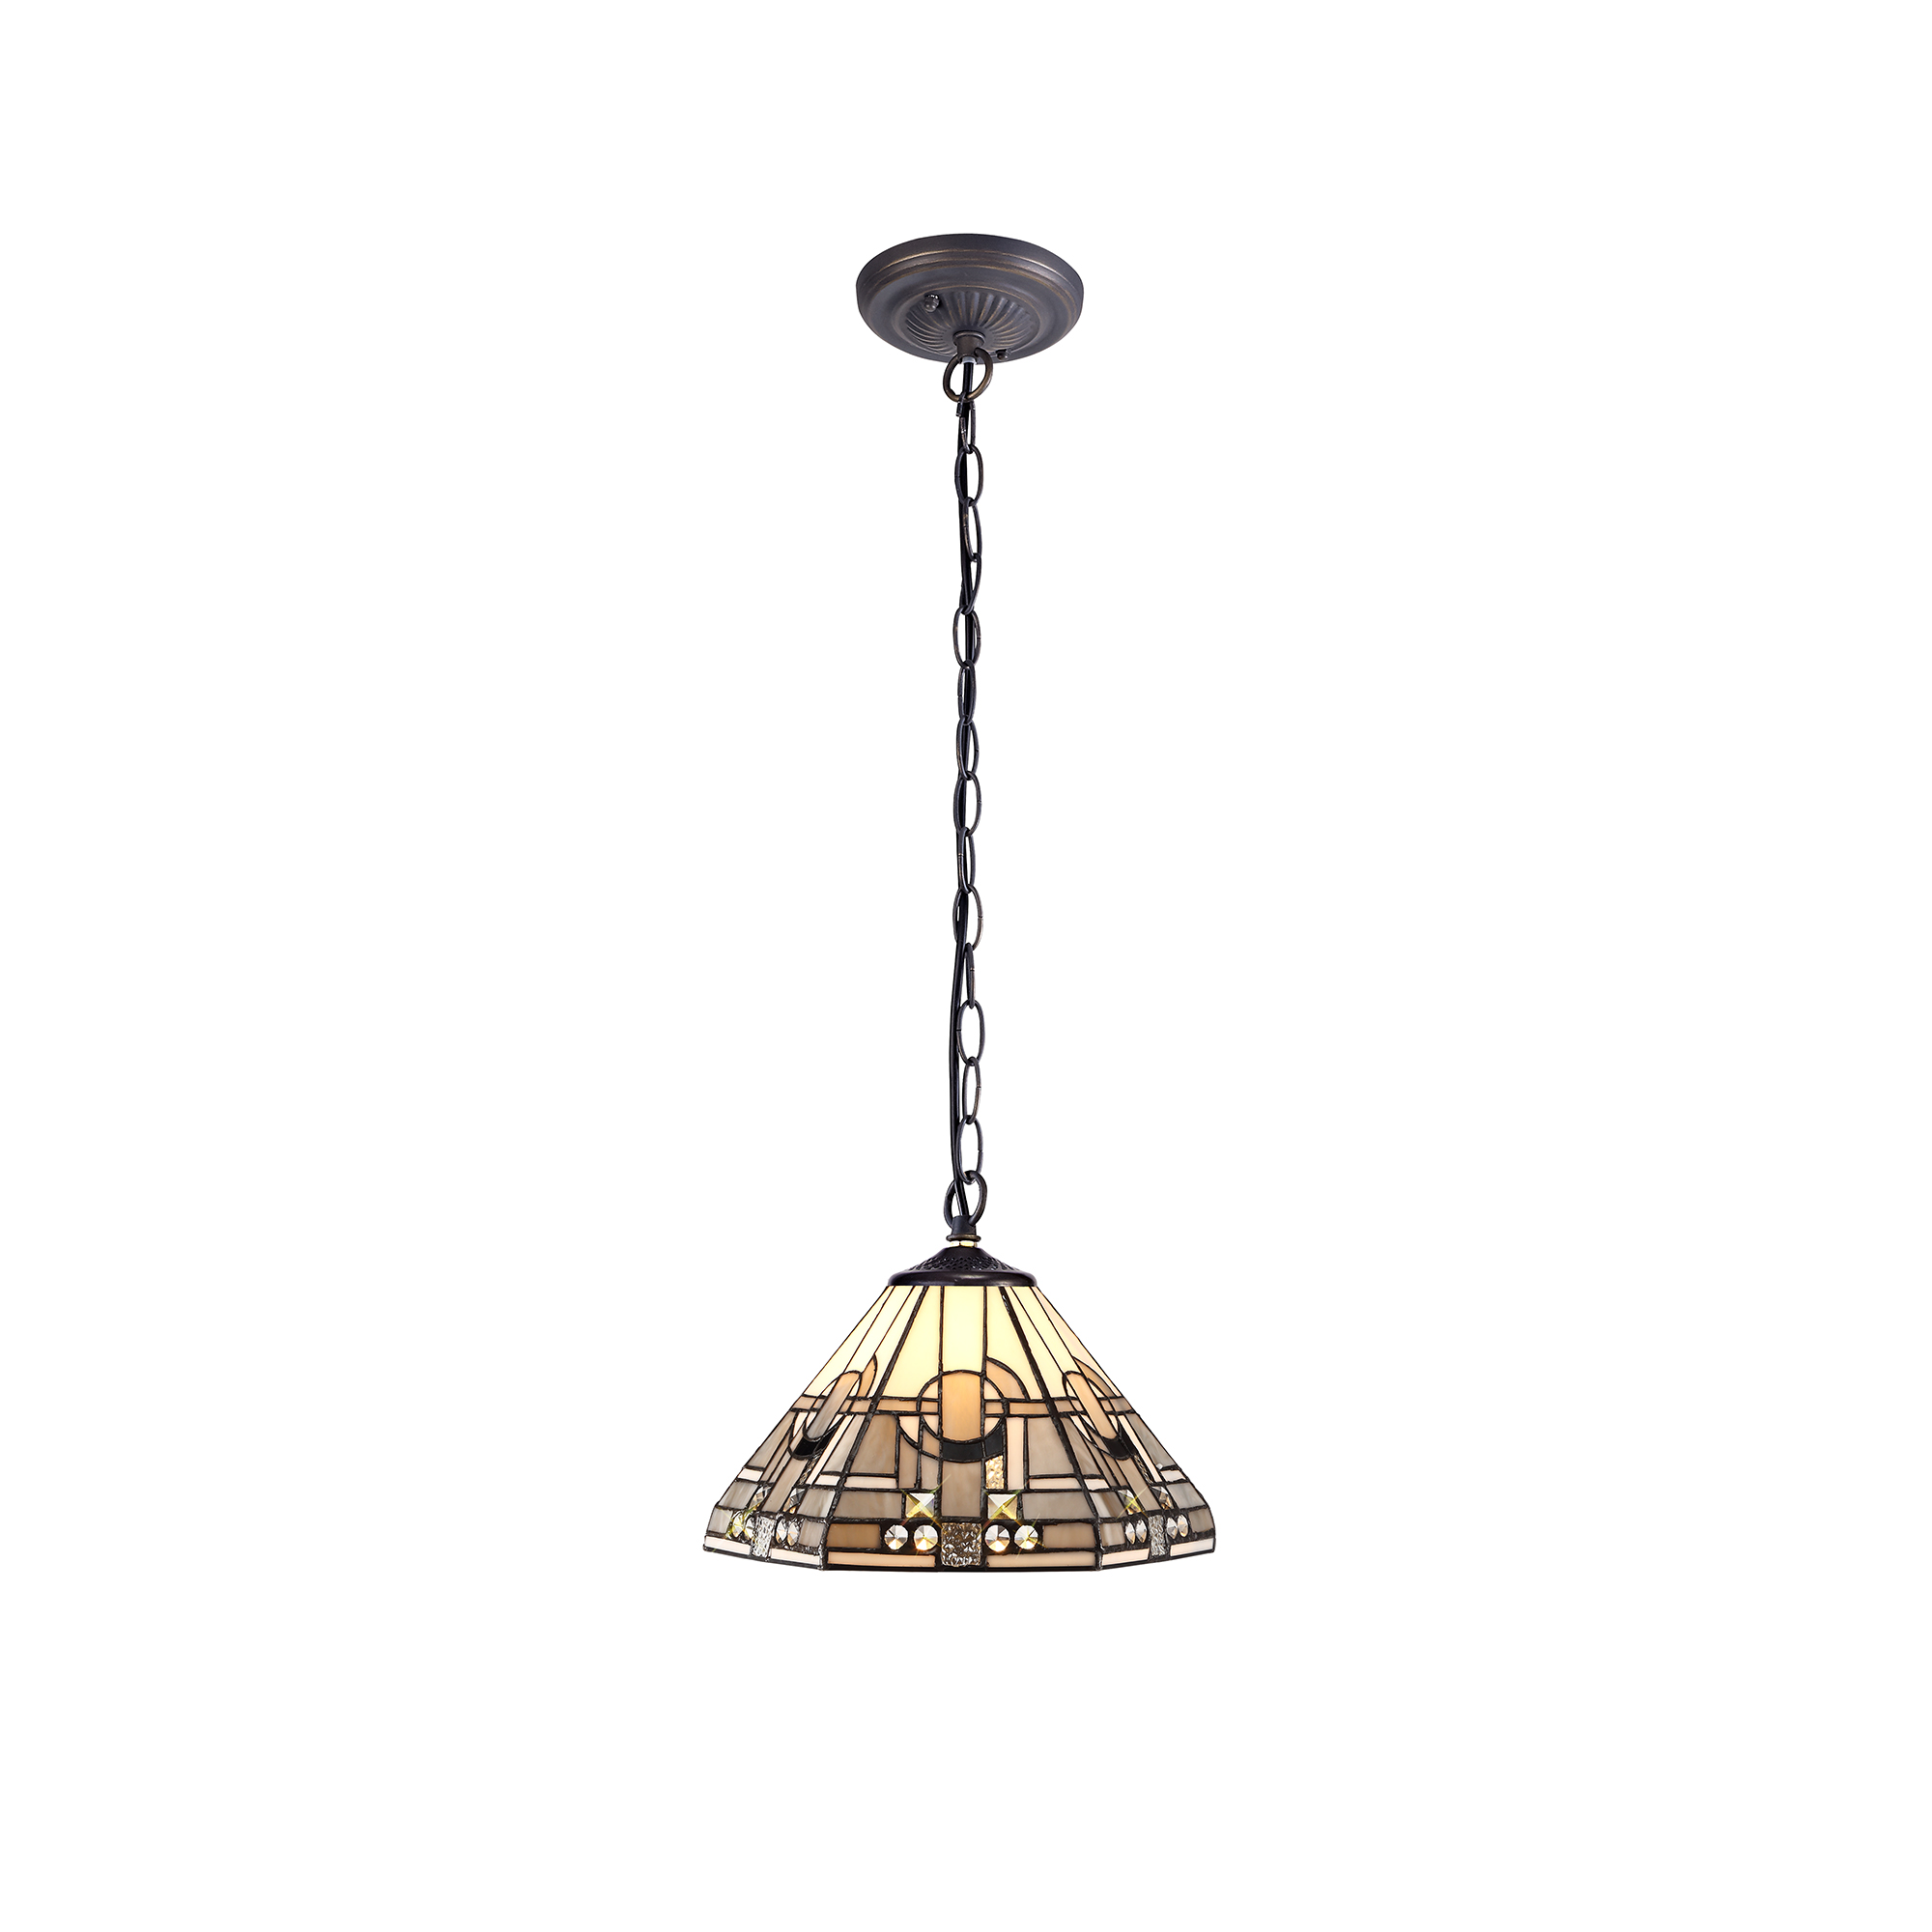 1 Light Downlighter Pendant E27 With 30cm Tiffany Shade, White/Grey/Black/Clear Crystal/Aged Antique Brass